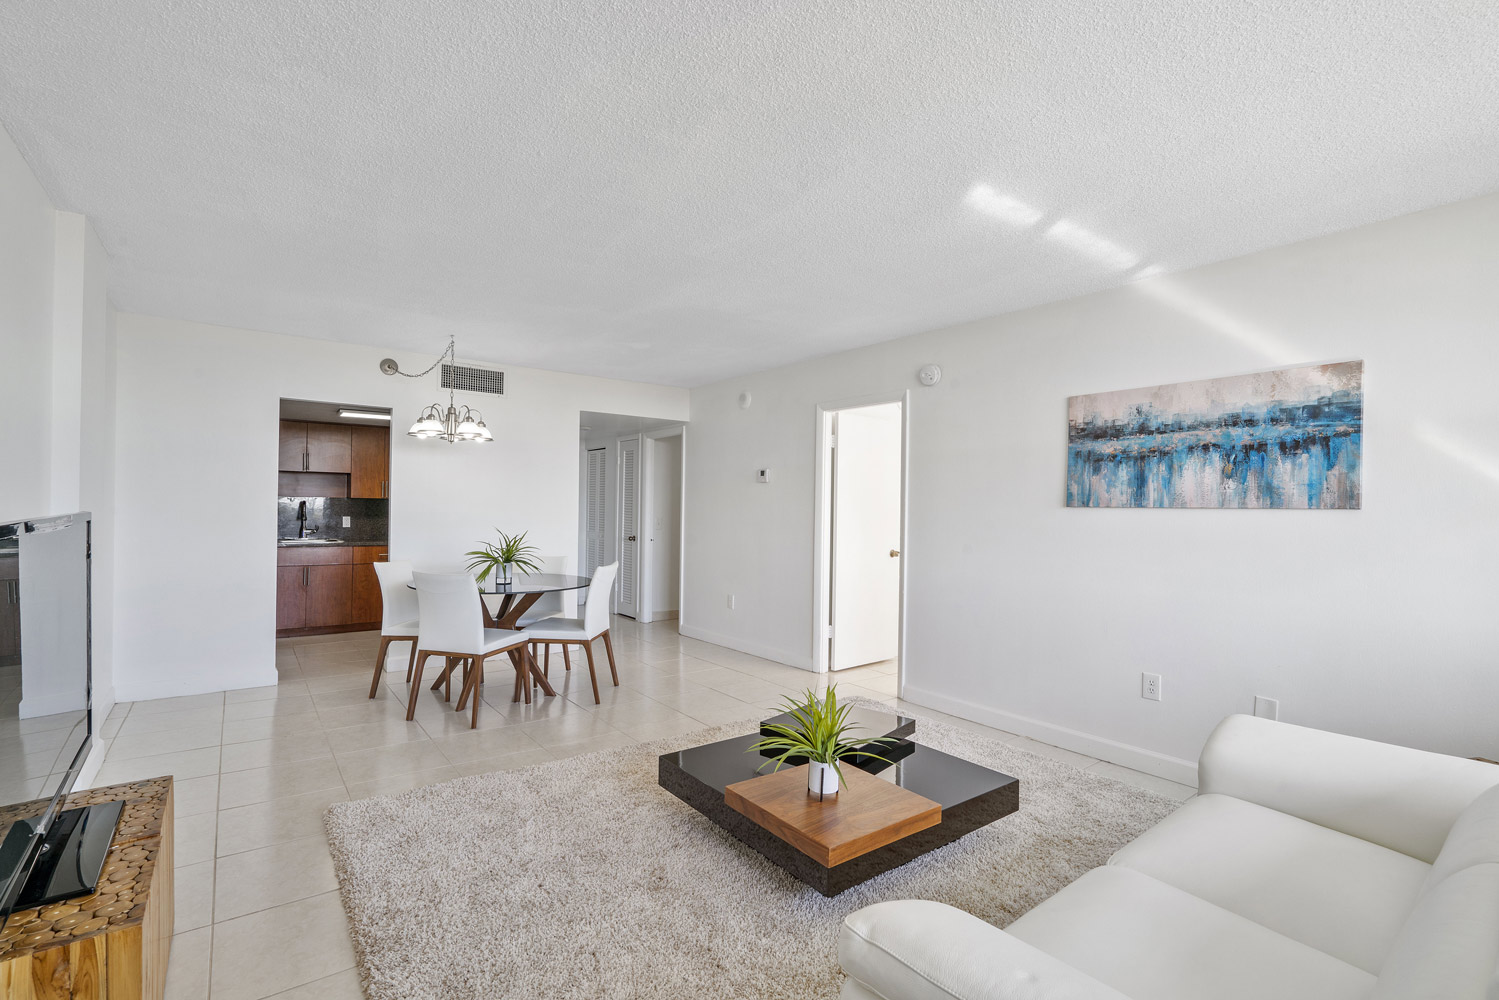 Interior Apartment  at Grand Island Square Apartments in North Miami Beach, Florida